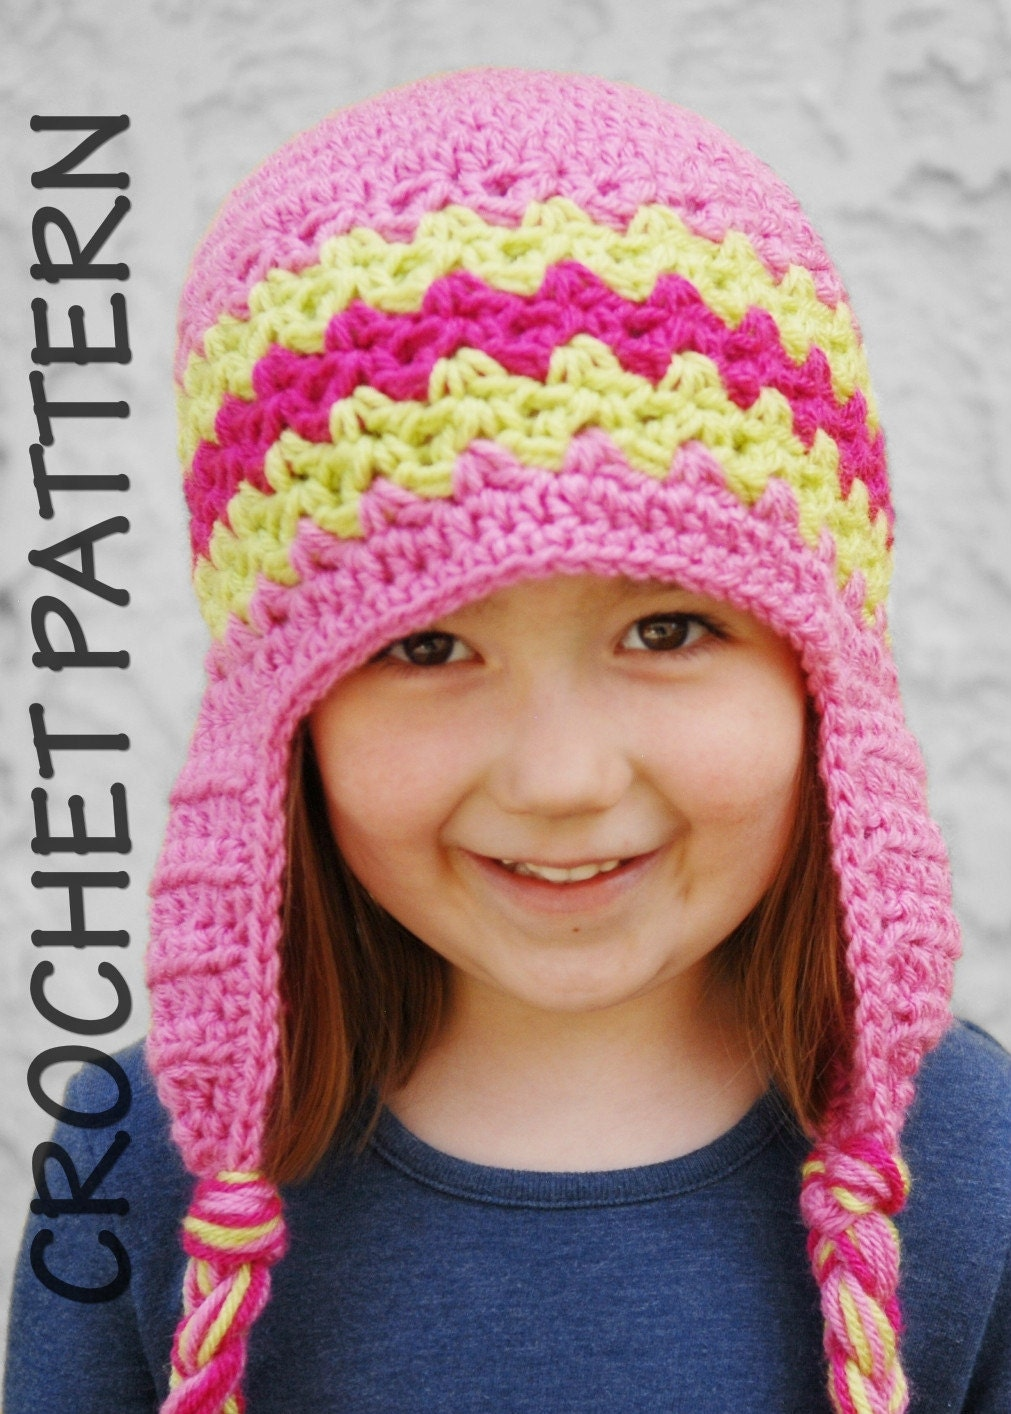 Crochet Beanie Pattern For Child : CROCHET PATTERNS KIDS HATS ? Crochet For Beginners